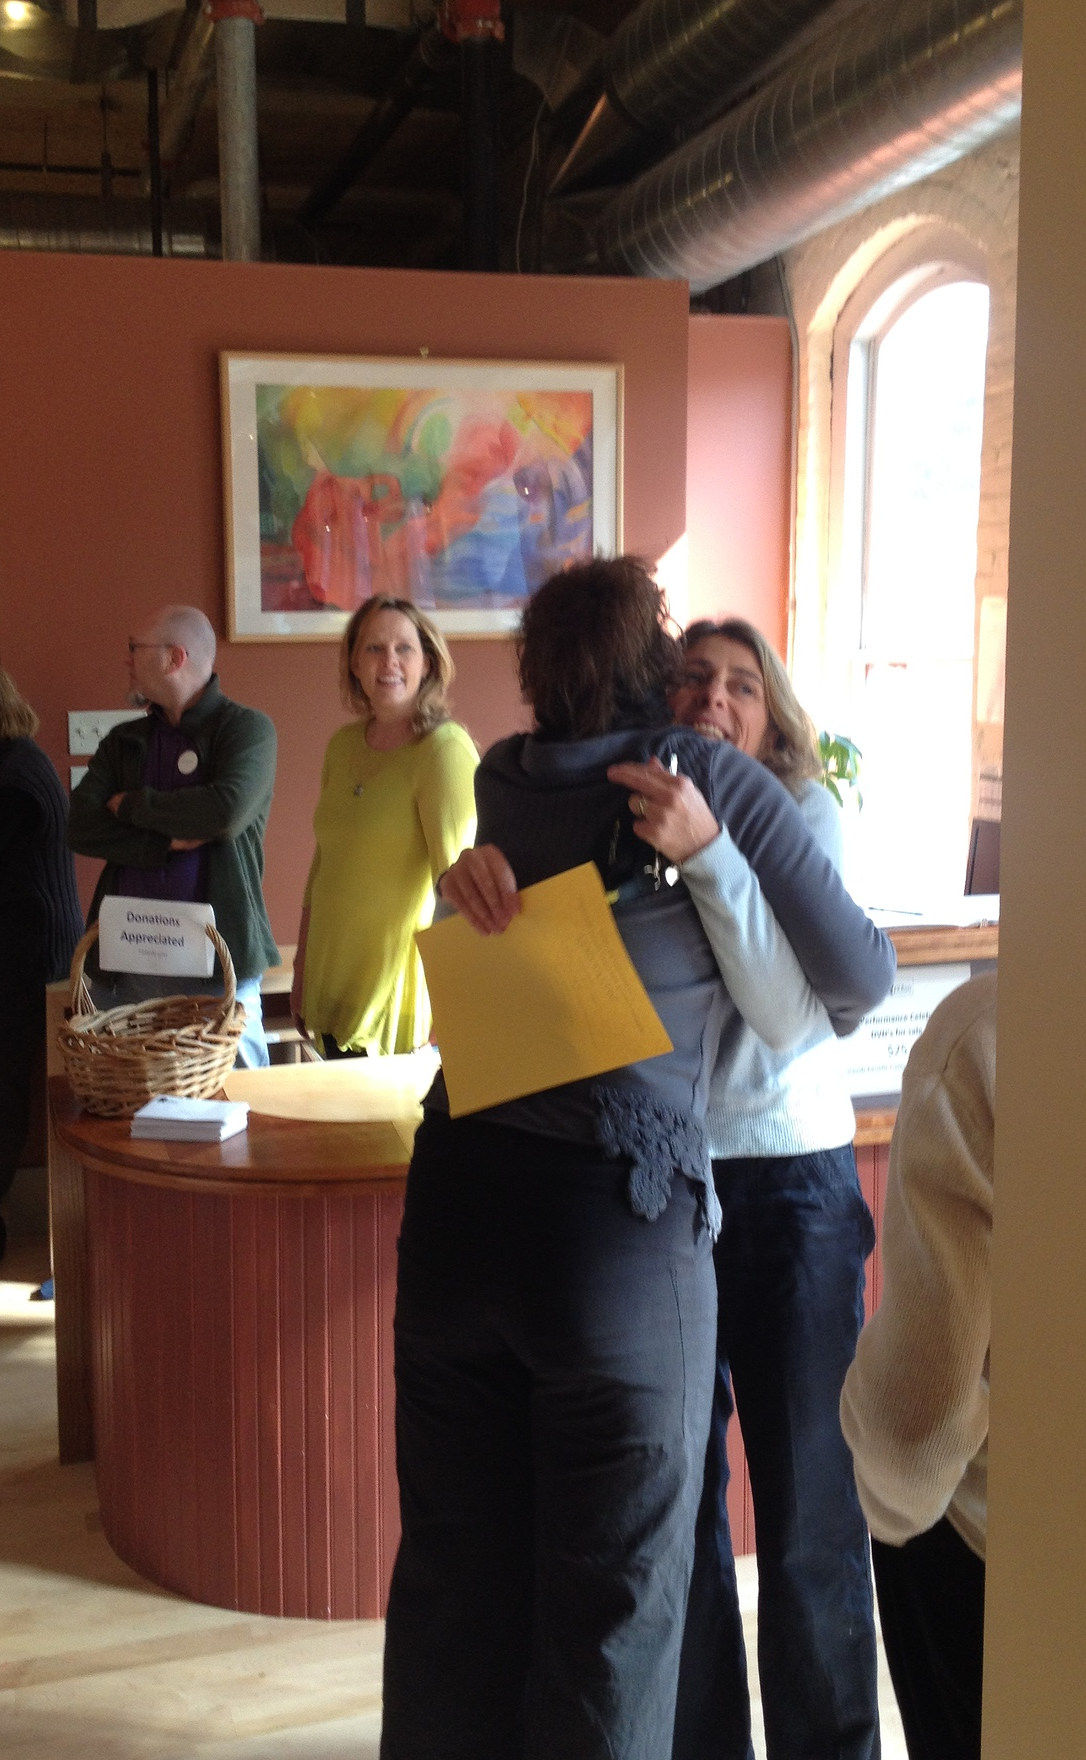 Bettina Montano, Founder and Creative Director of Berkshire Pulse receiving well-deserved hug.